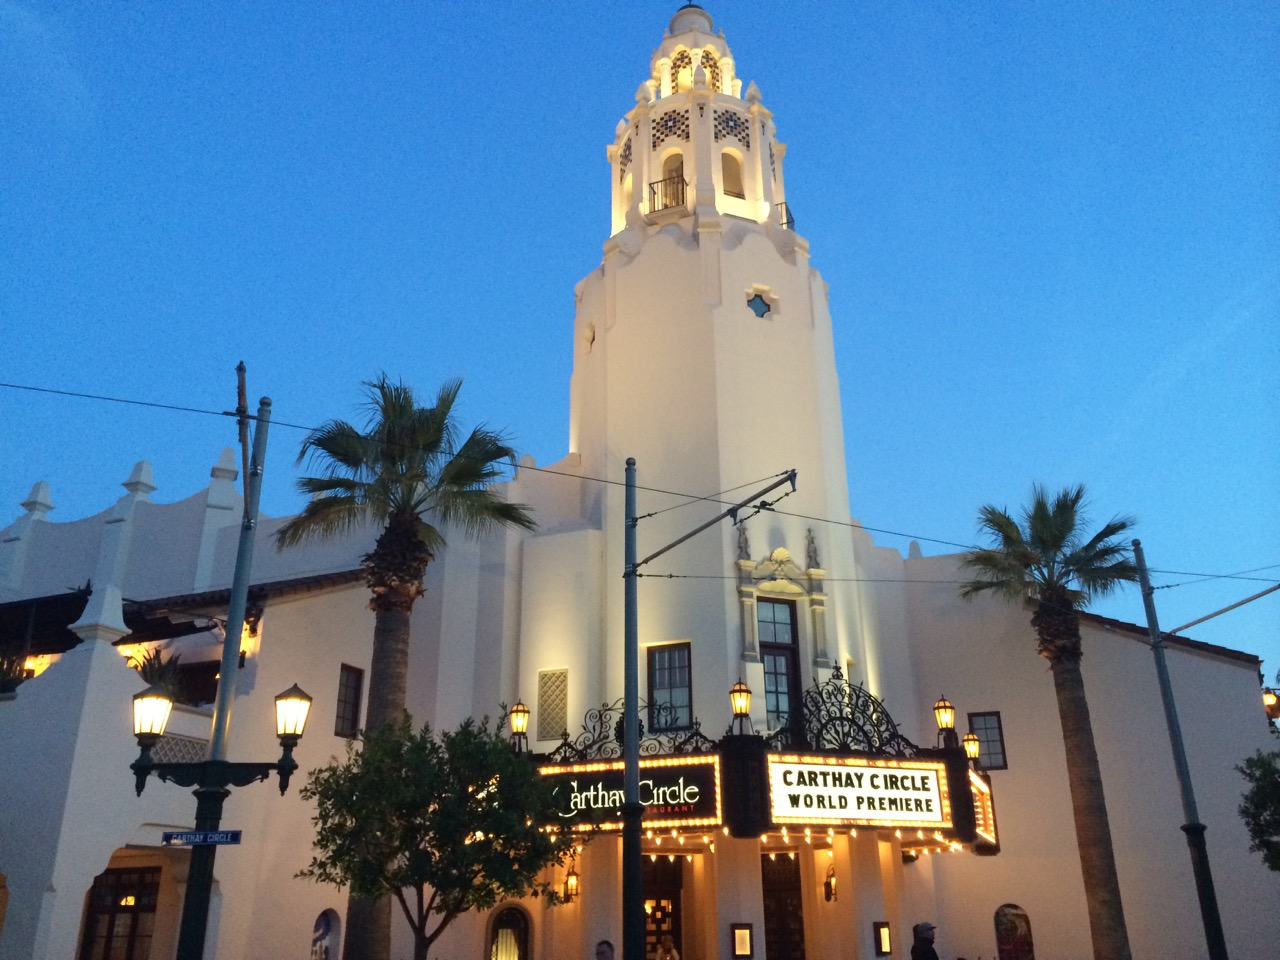 The focal point of Buena Vista Street, The Carthay Circle Theater, is one of my very favorite places to dine in all of the Disney parks world wide. Photo by J. Jeff Kober.